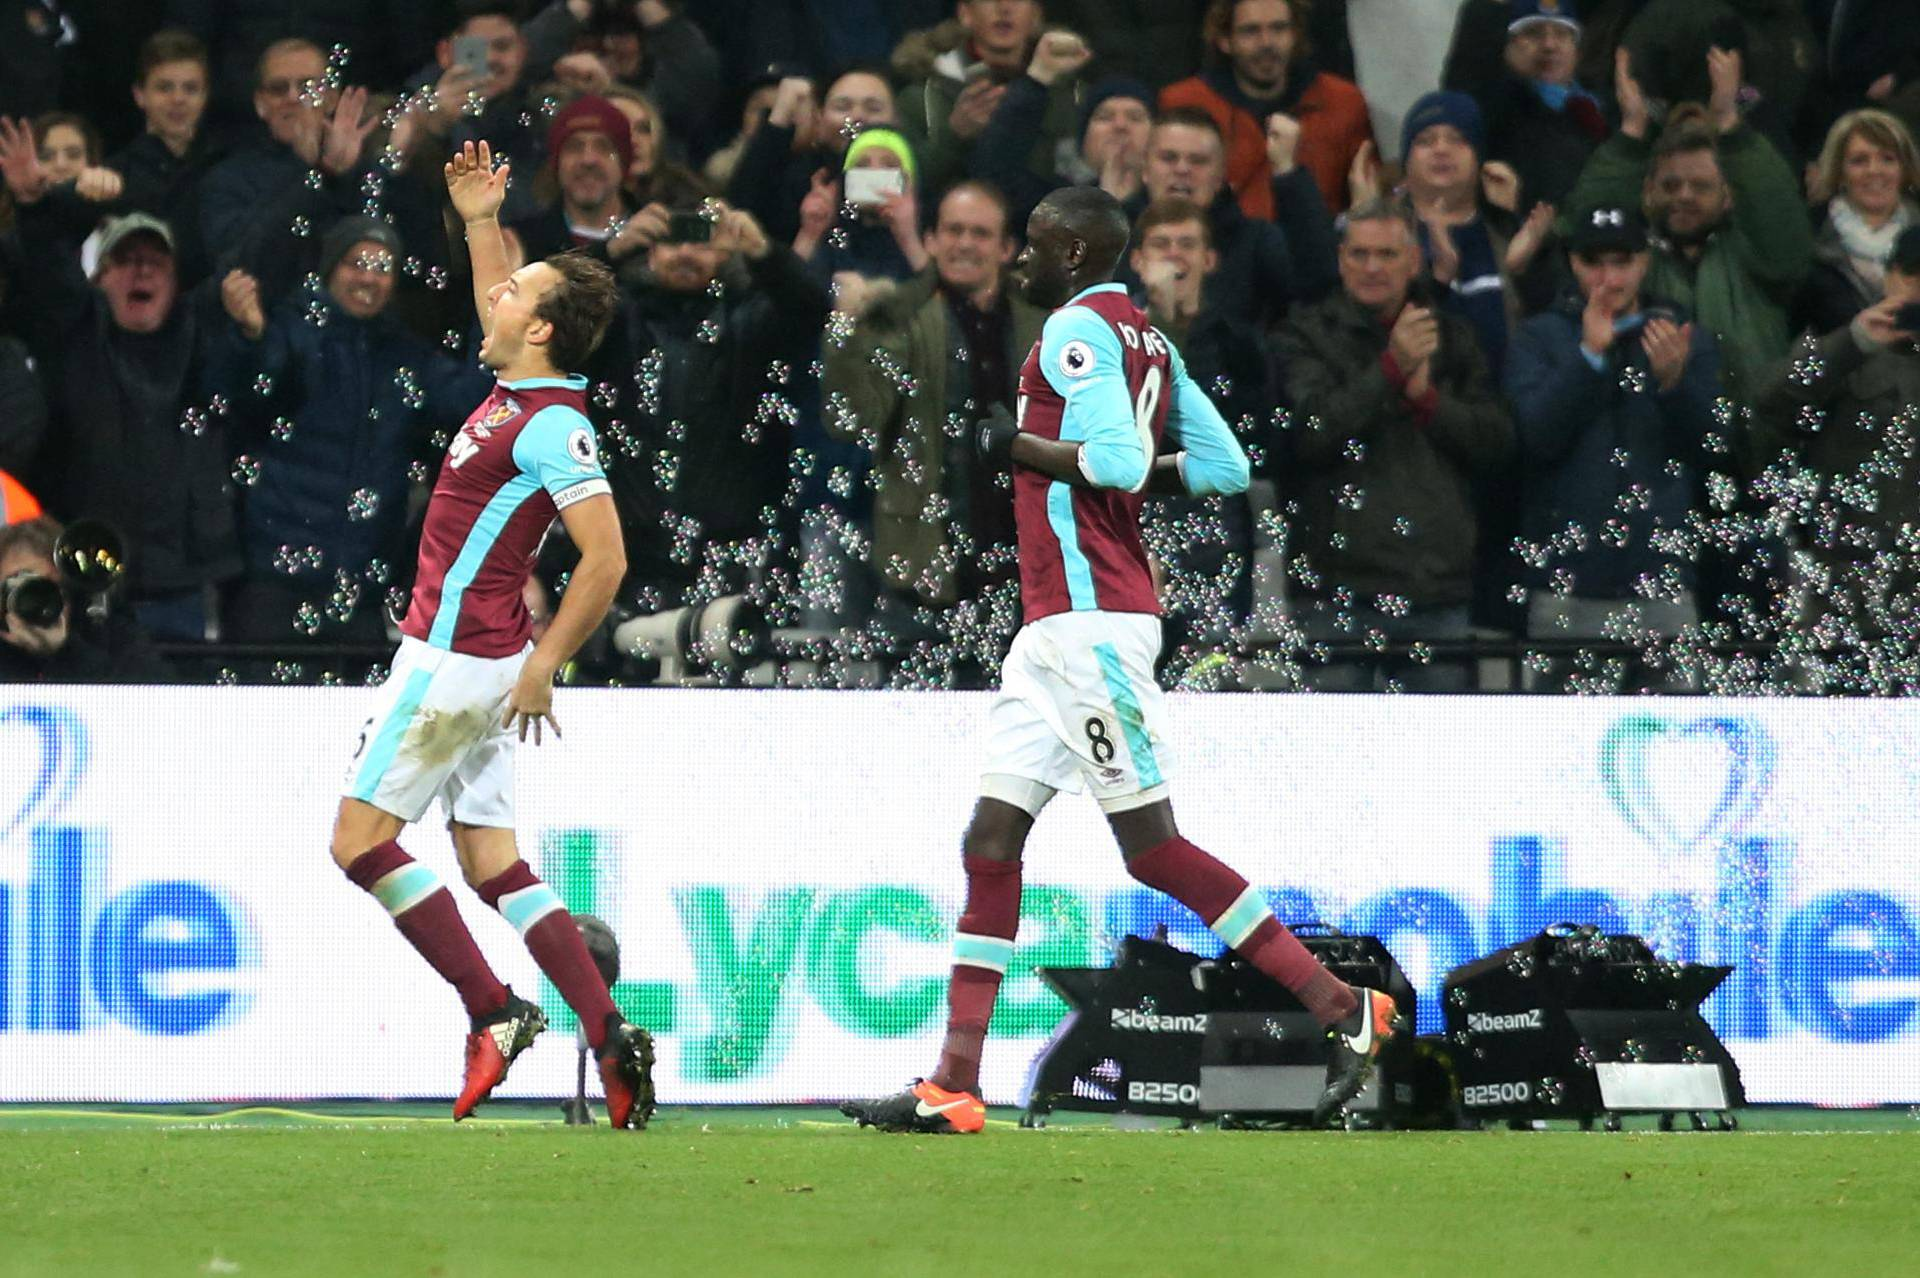 West Ham United's Mark Noble celebrates scoring their first goal